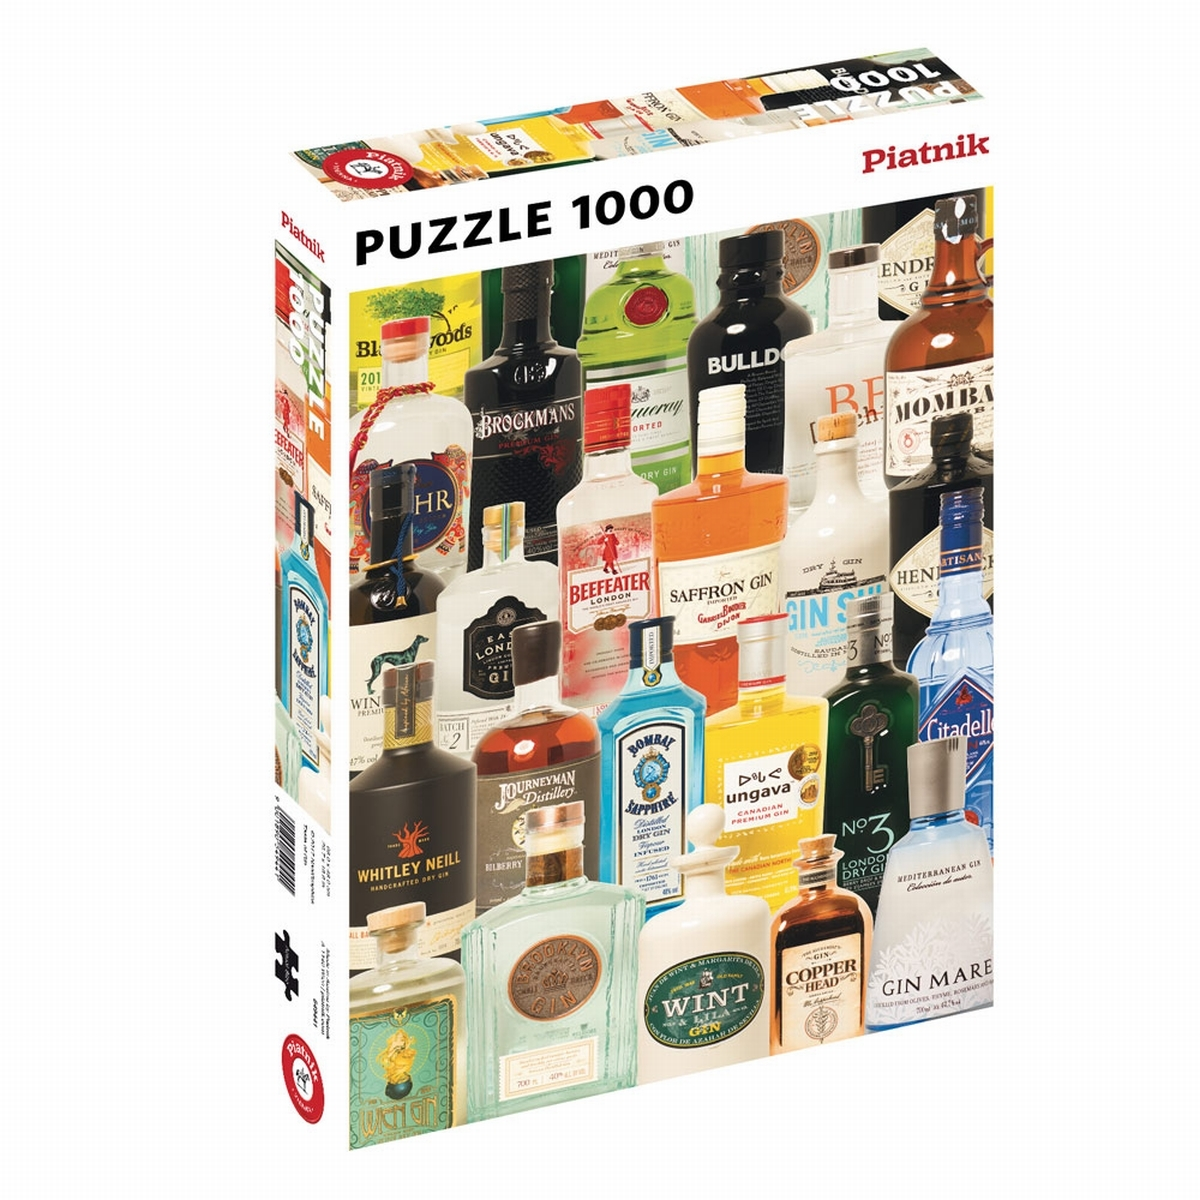 GIN - 1000 PIECES